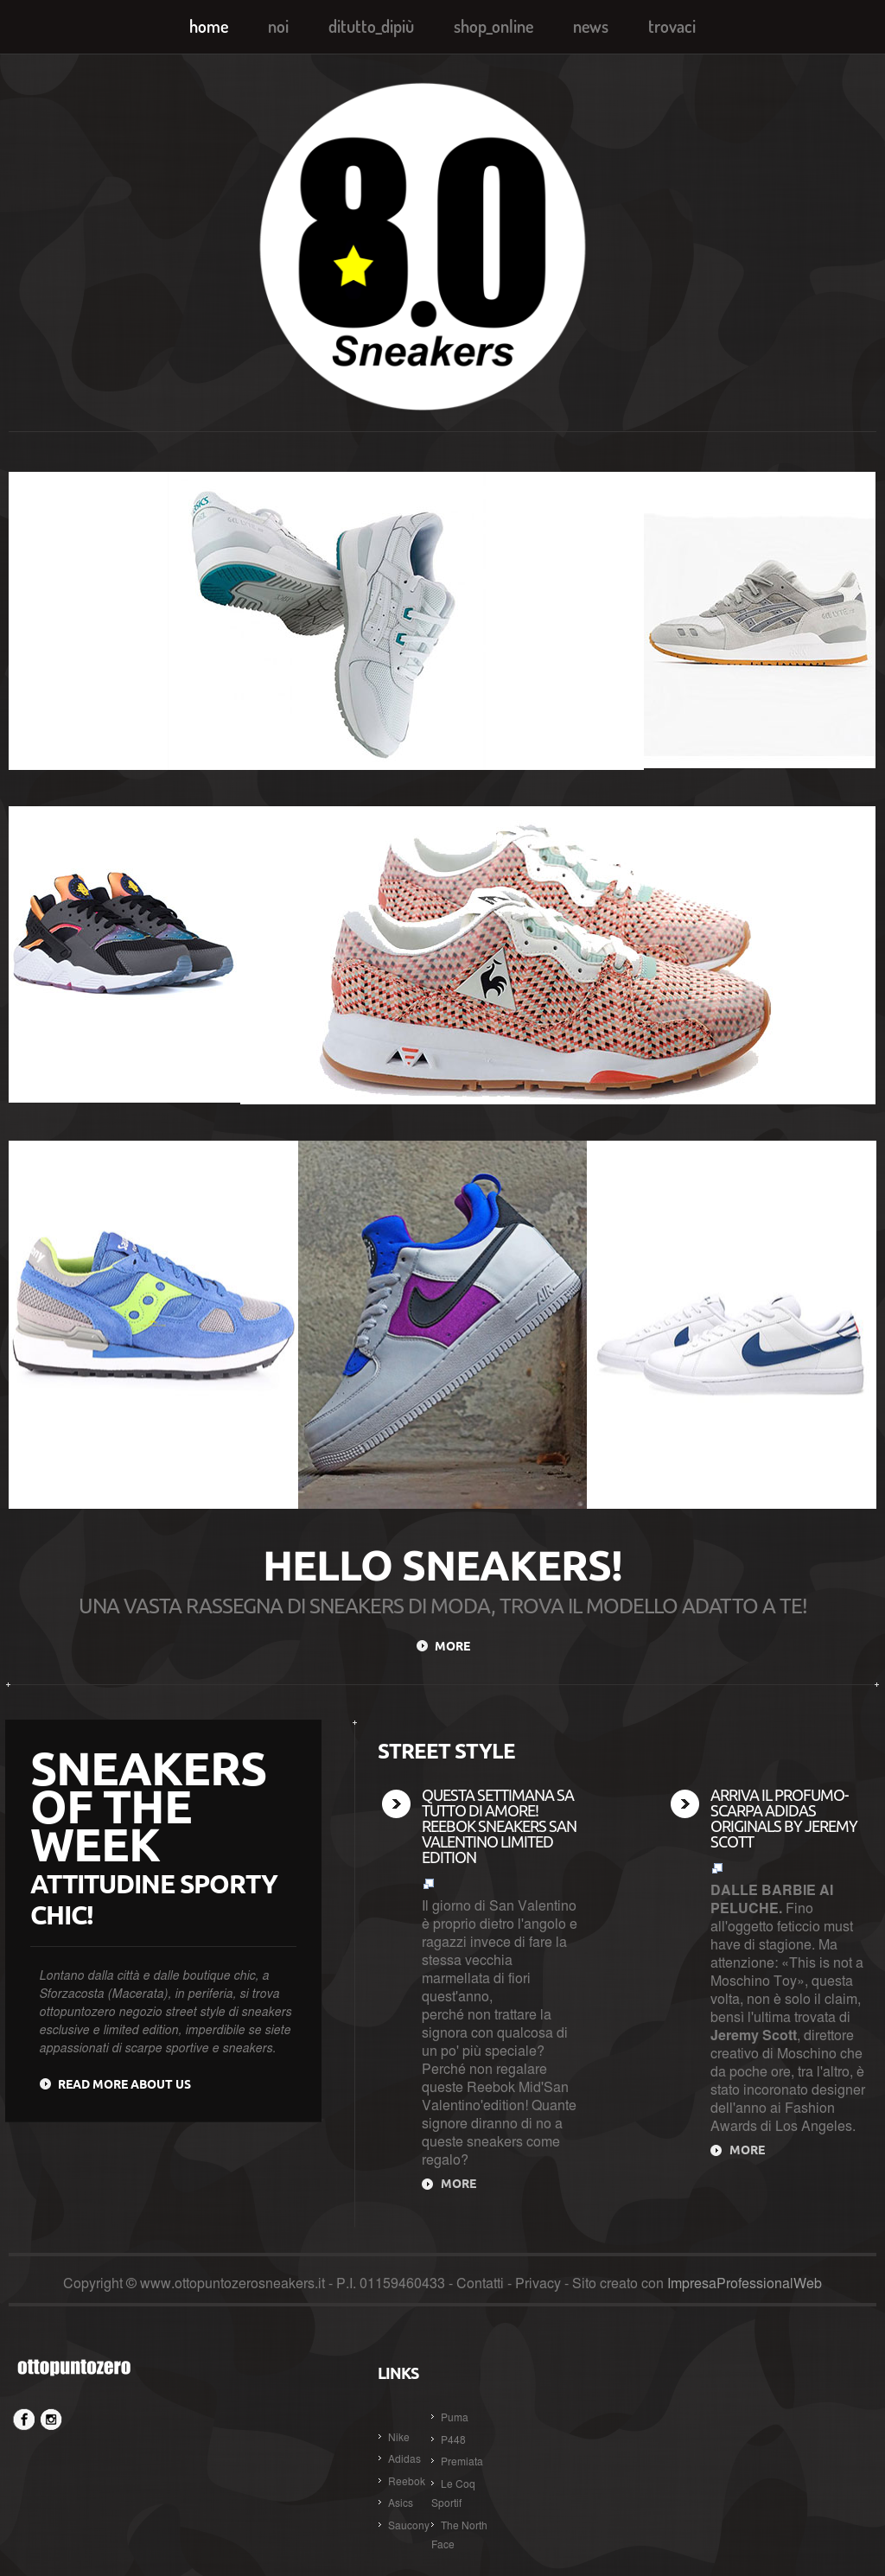 0 Owler CompetitorsRevenue 8 And Employees Sneakers Company Profile vmN0w8nO